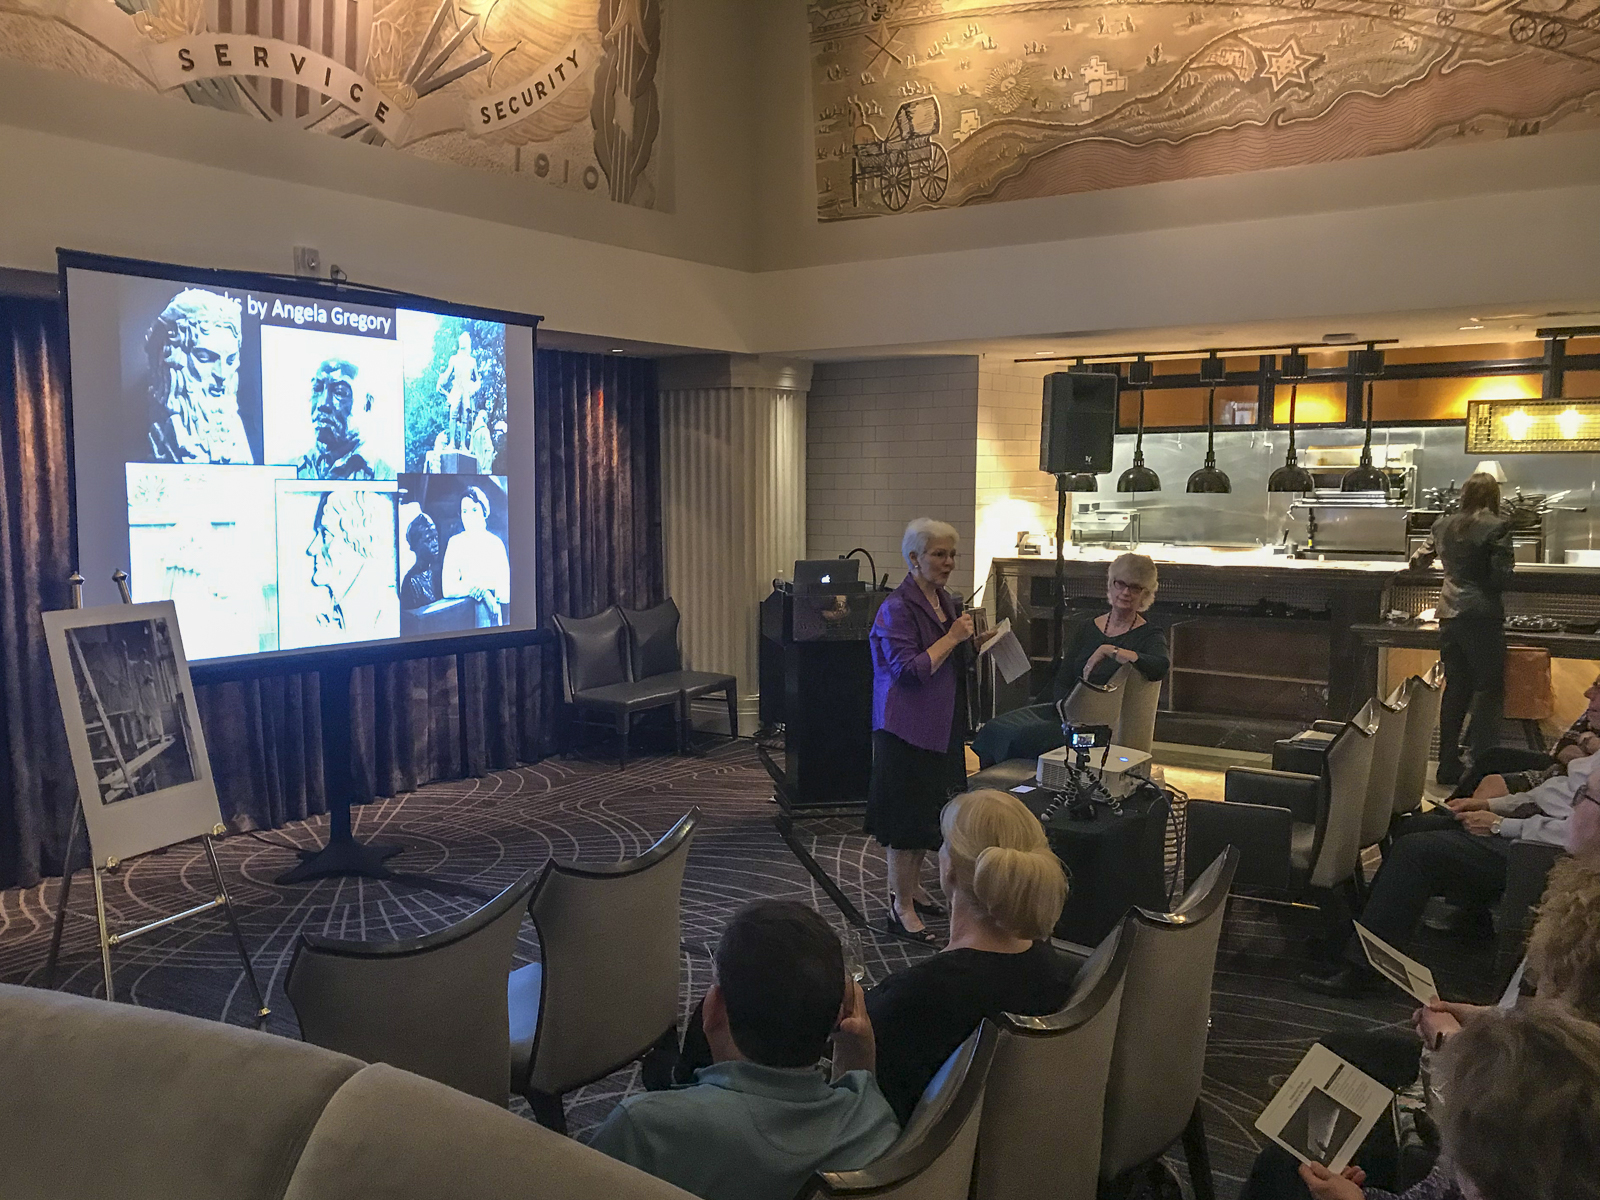 Susan Hymel, Angela Gregory historian, speaks in The Gregory restaurant, Watermark Hotel, Baton Rouge, at the launch of  A Dream and a Chisel , 7 February 2019. Sculptured murals by Angela Gregory may be seen above.